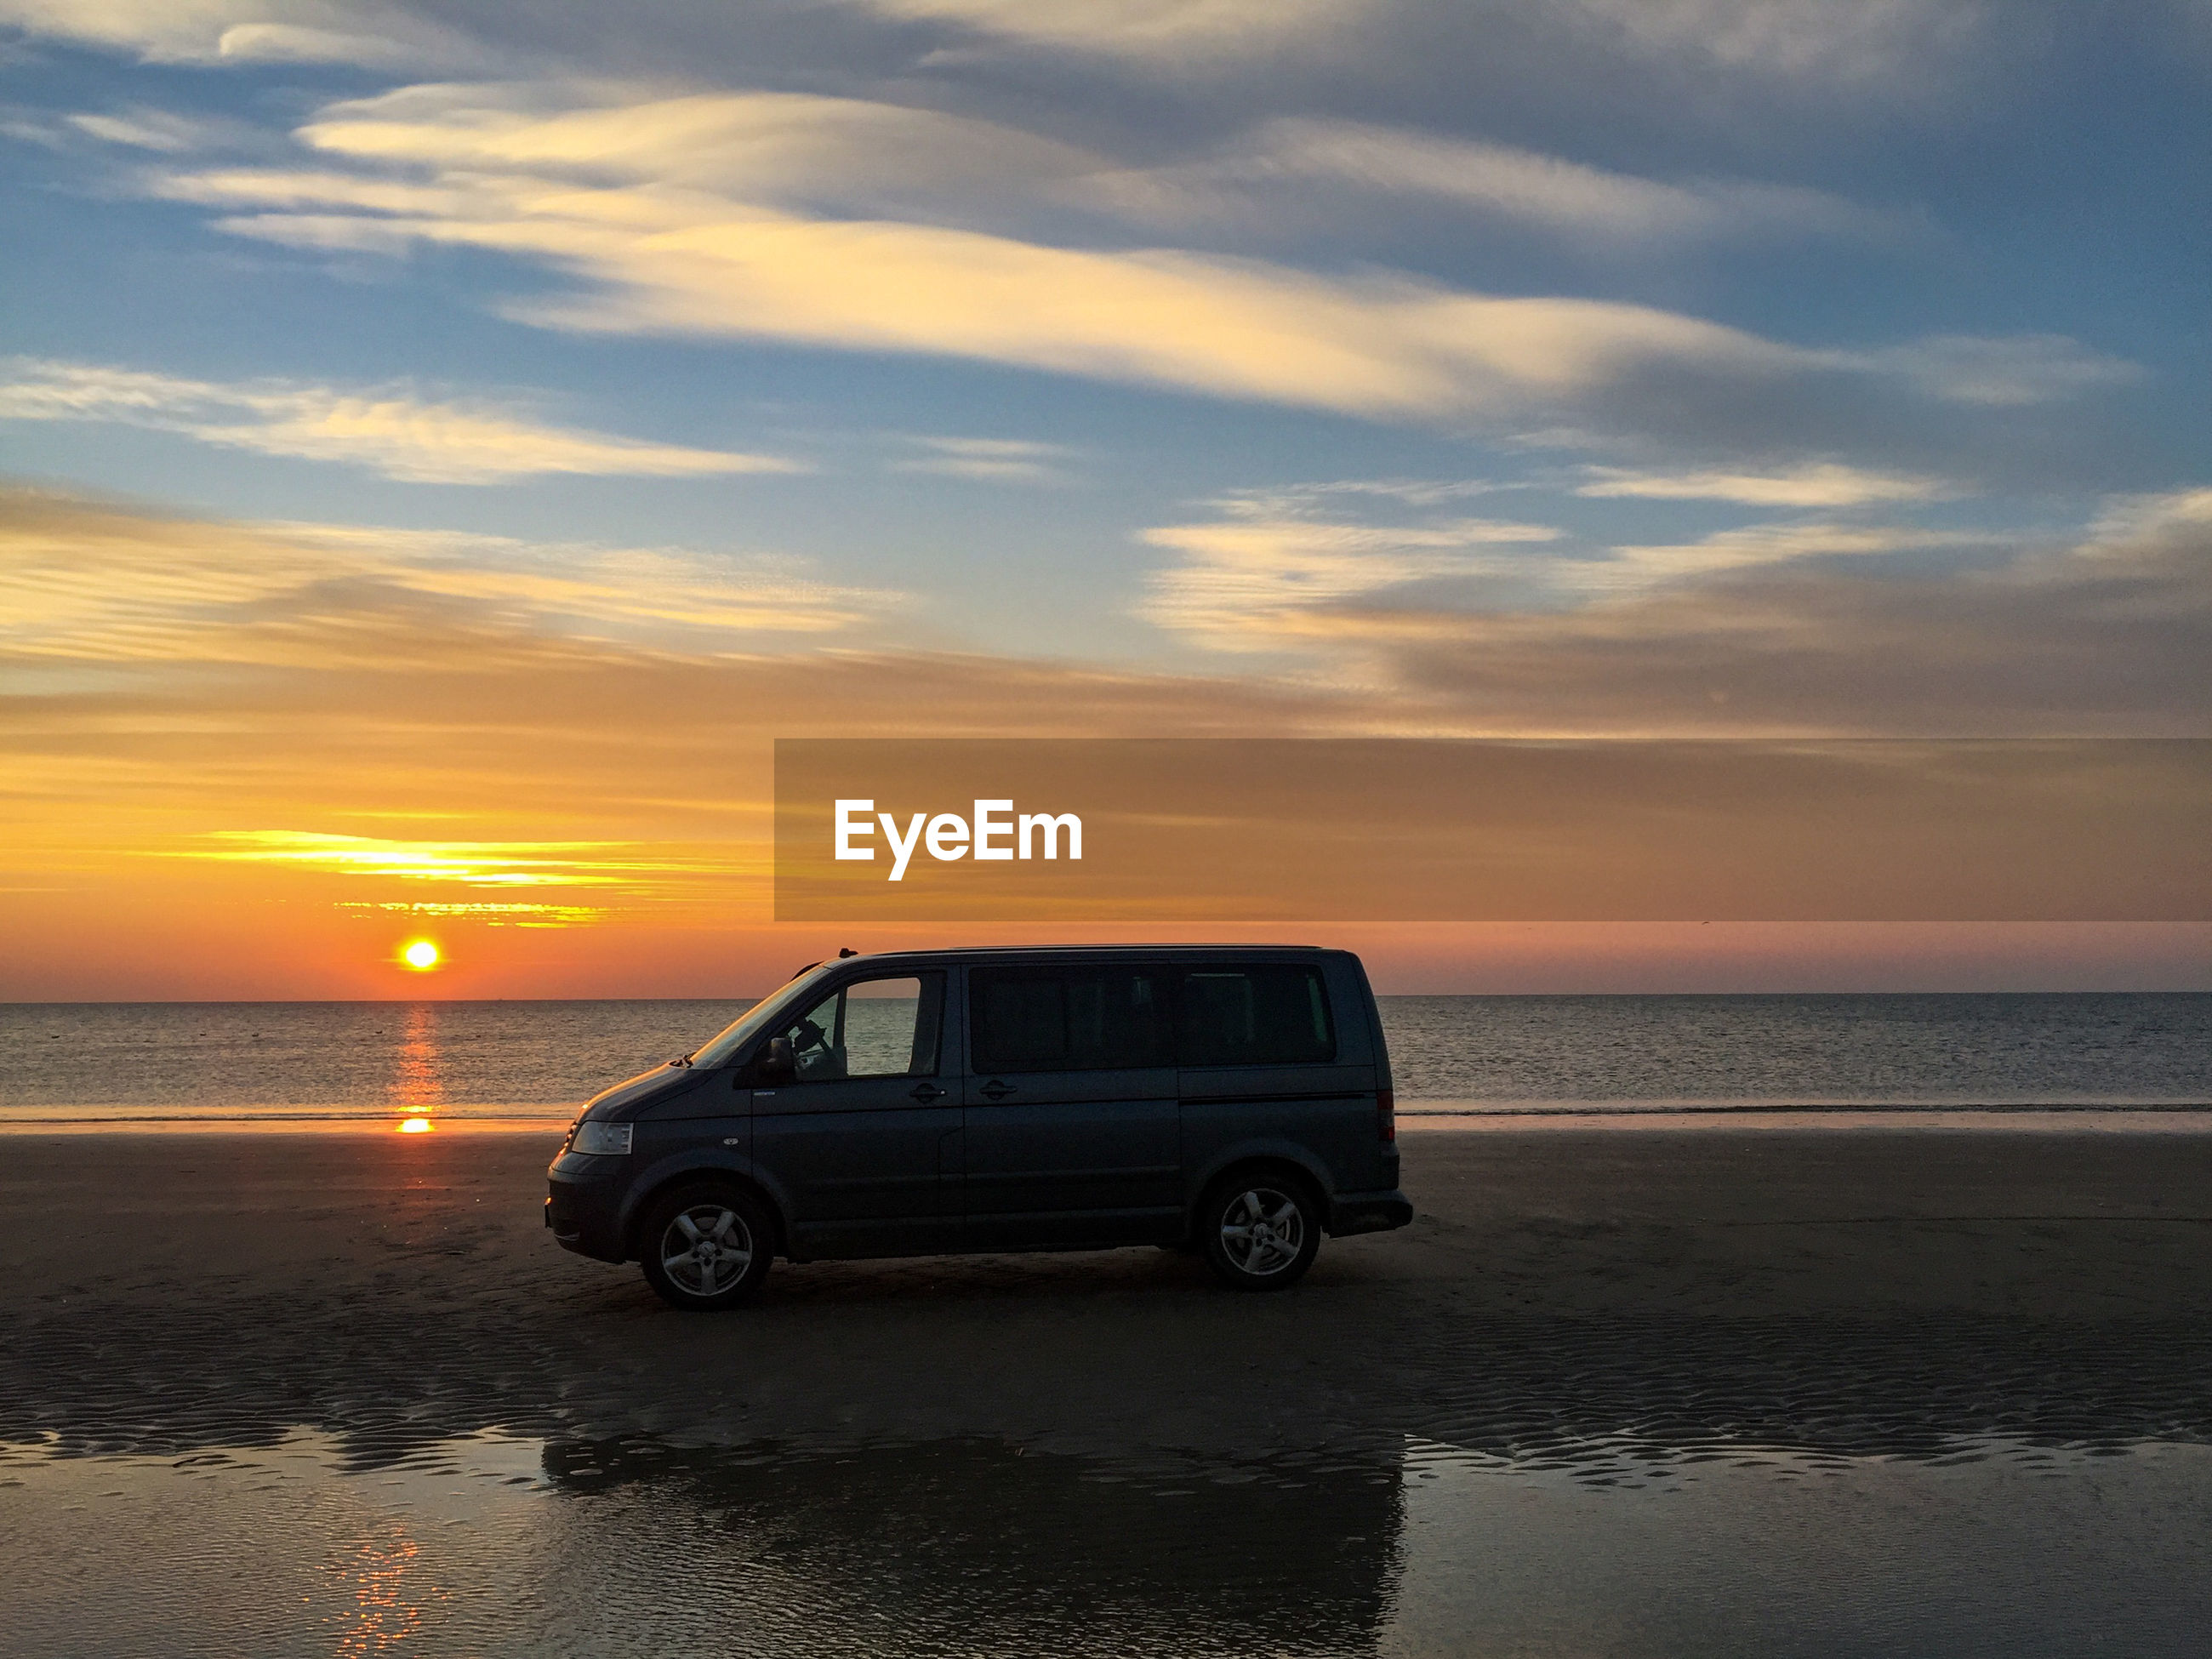 CAR ON SEA SHORE AGAINST SKY DURING SUNSET